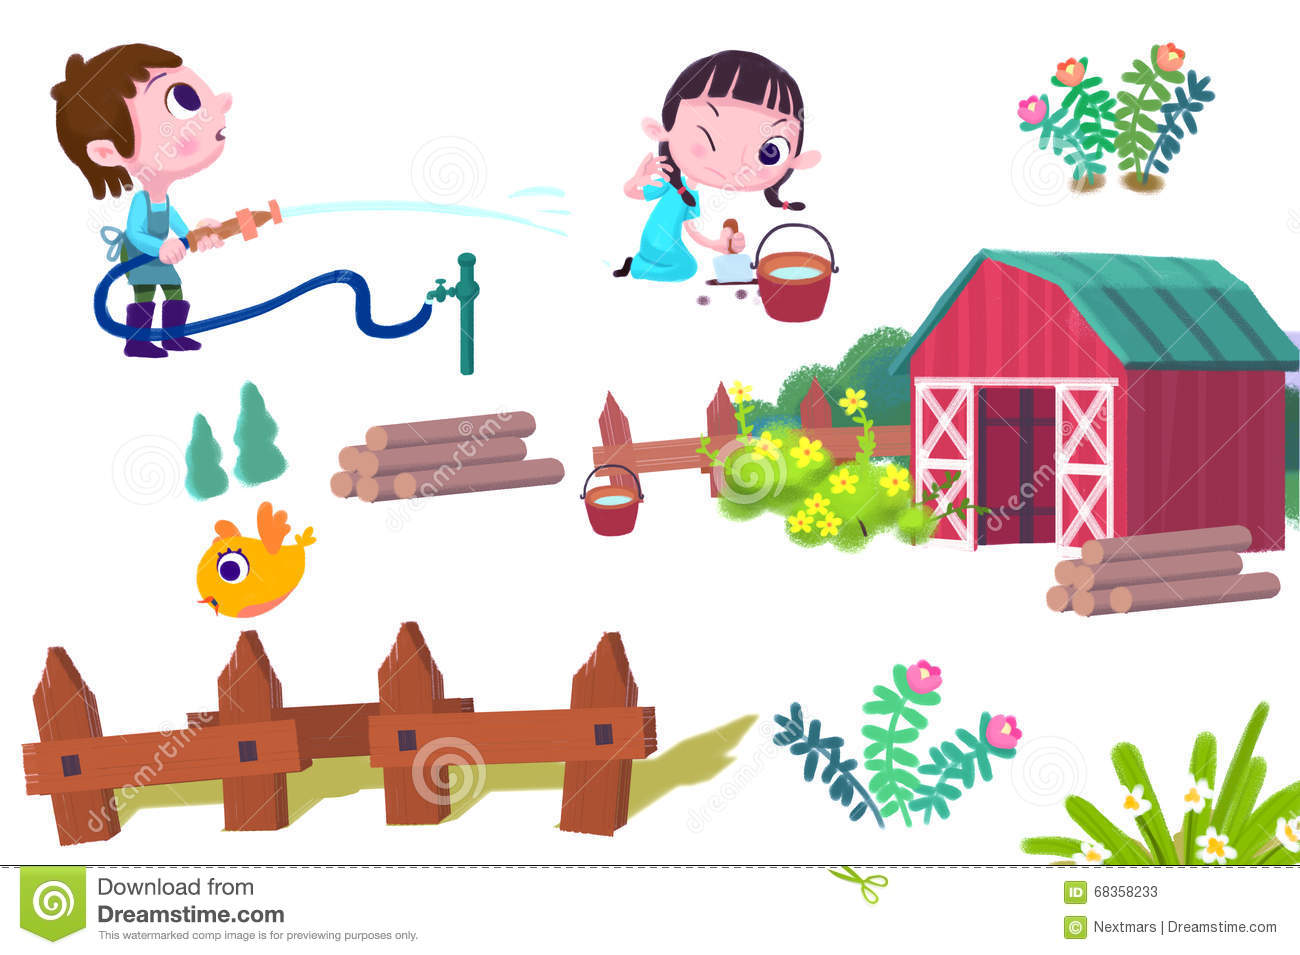 Farm Fence Clipart clip art set: boy and girl, bird, fence, farm house, wood, etc